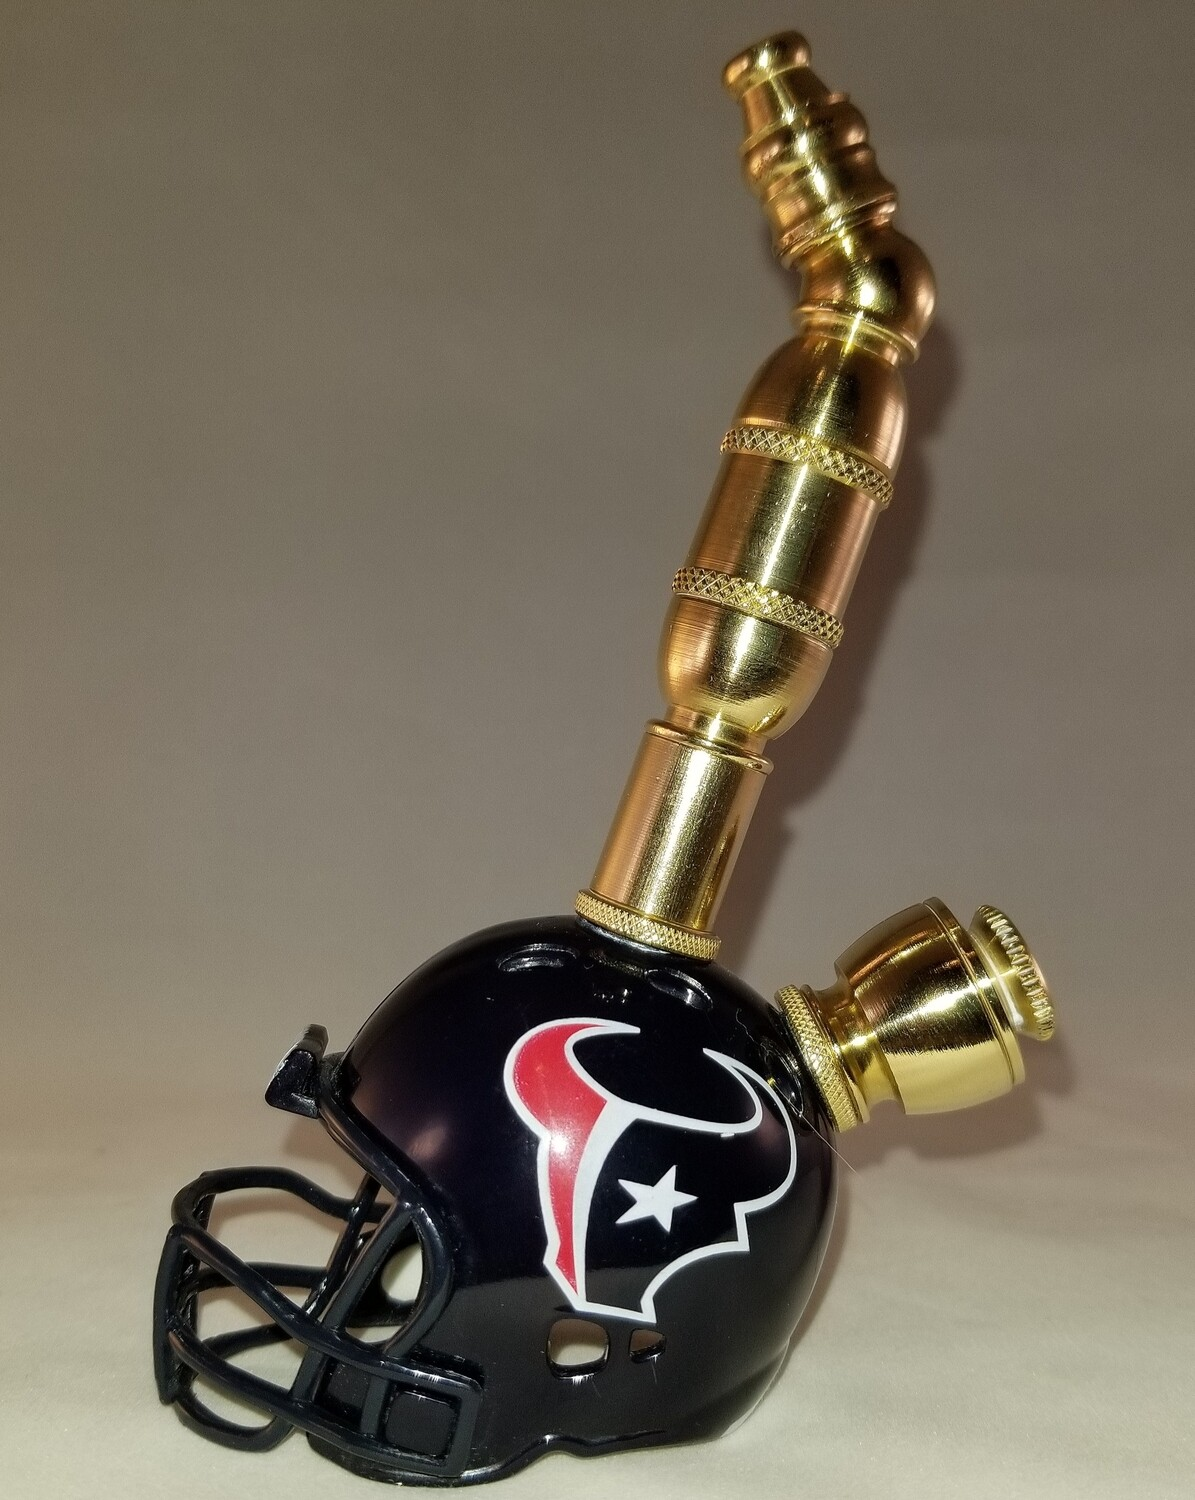 HOUSTON TEXANS NFL FOOTBALL HELMET SMOKING PIPE Upright/Brass